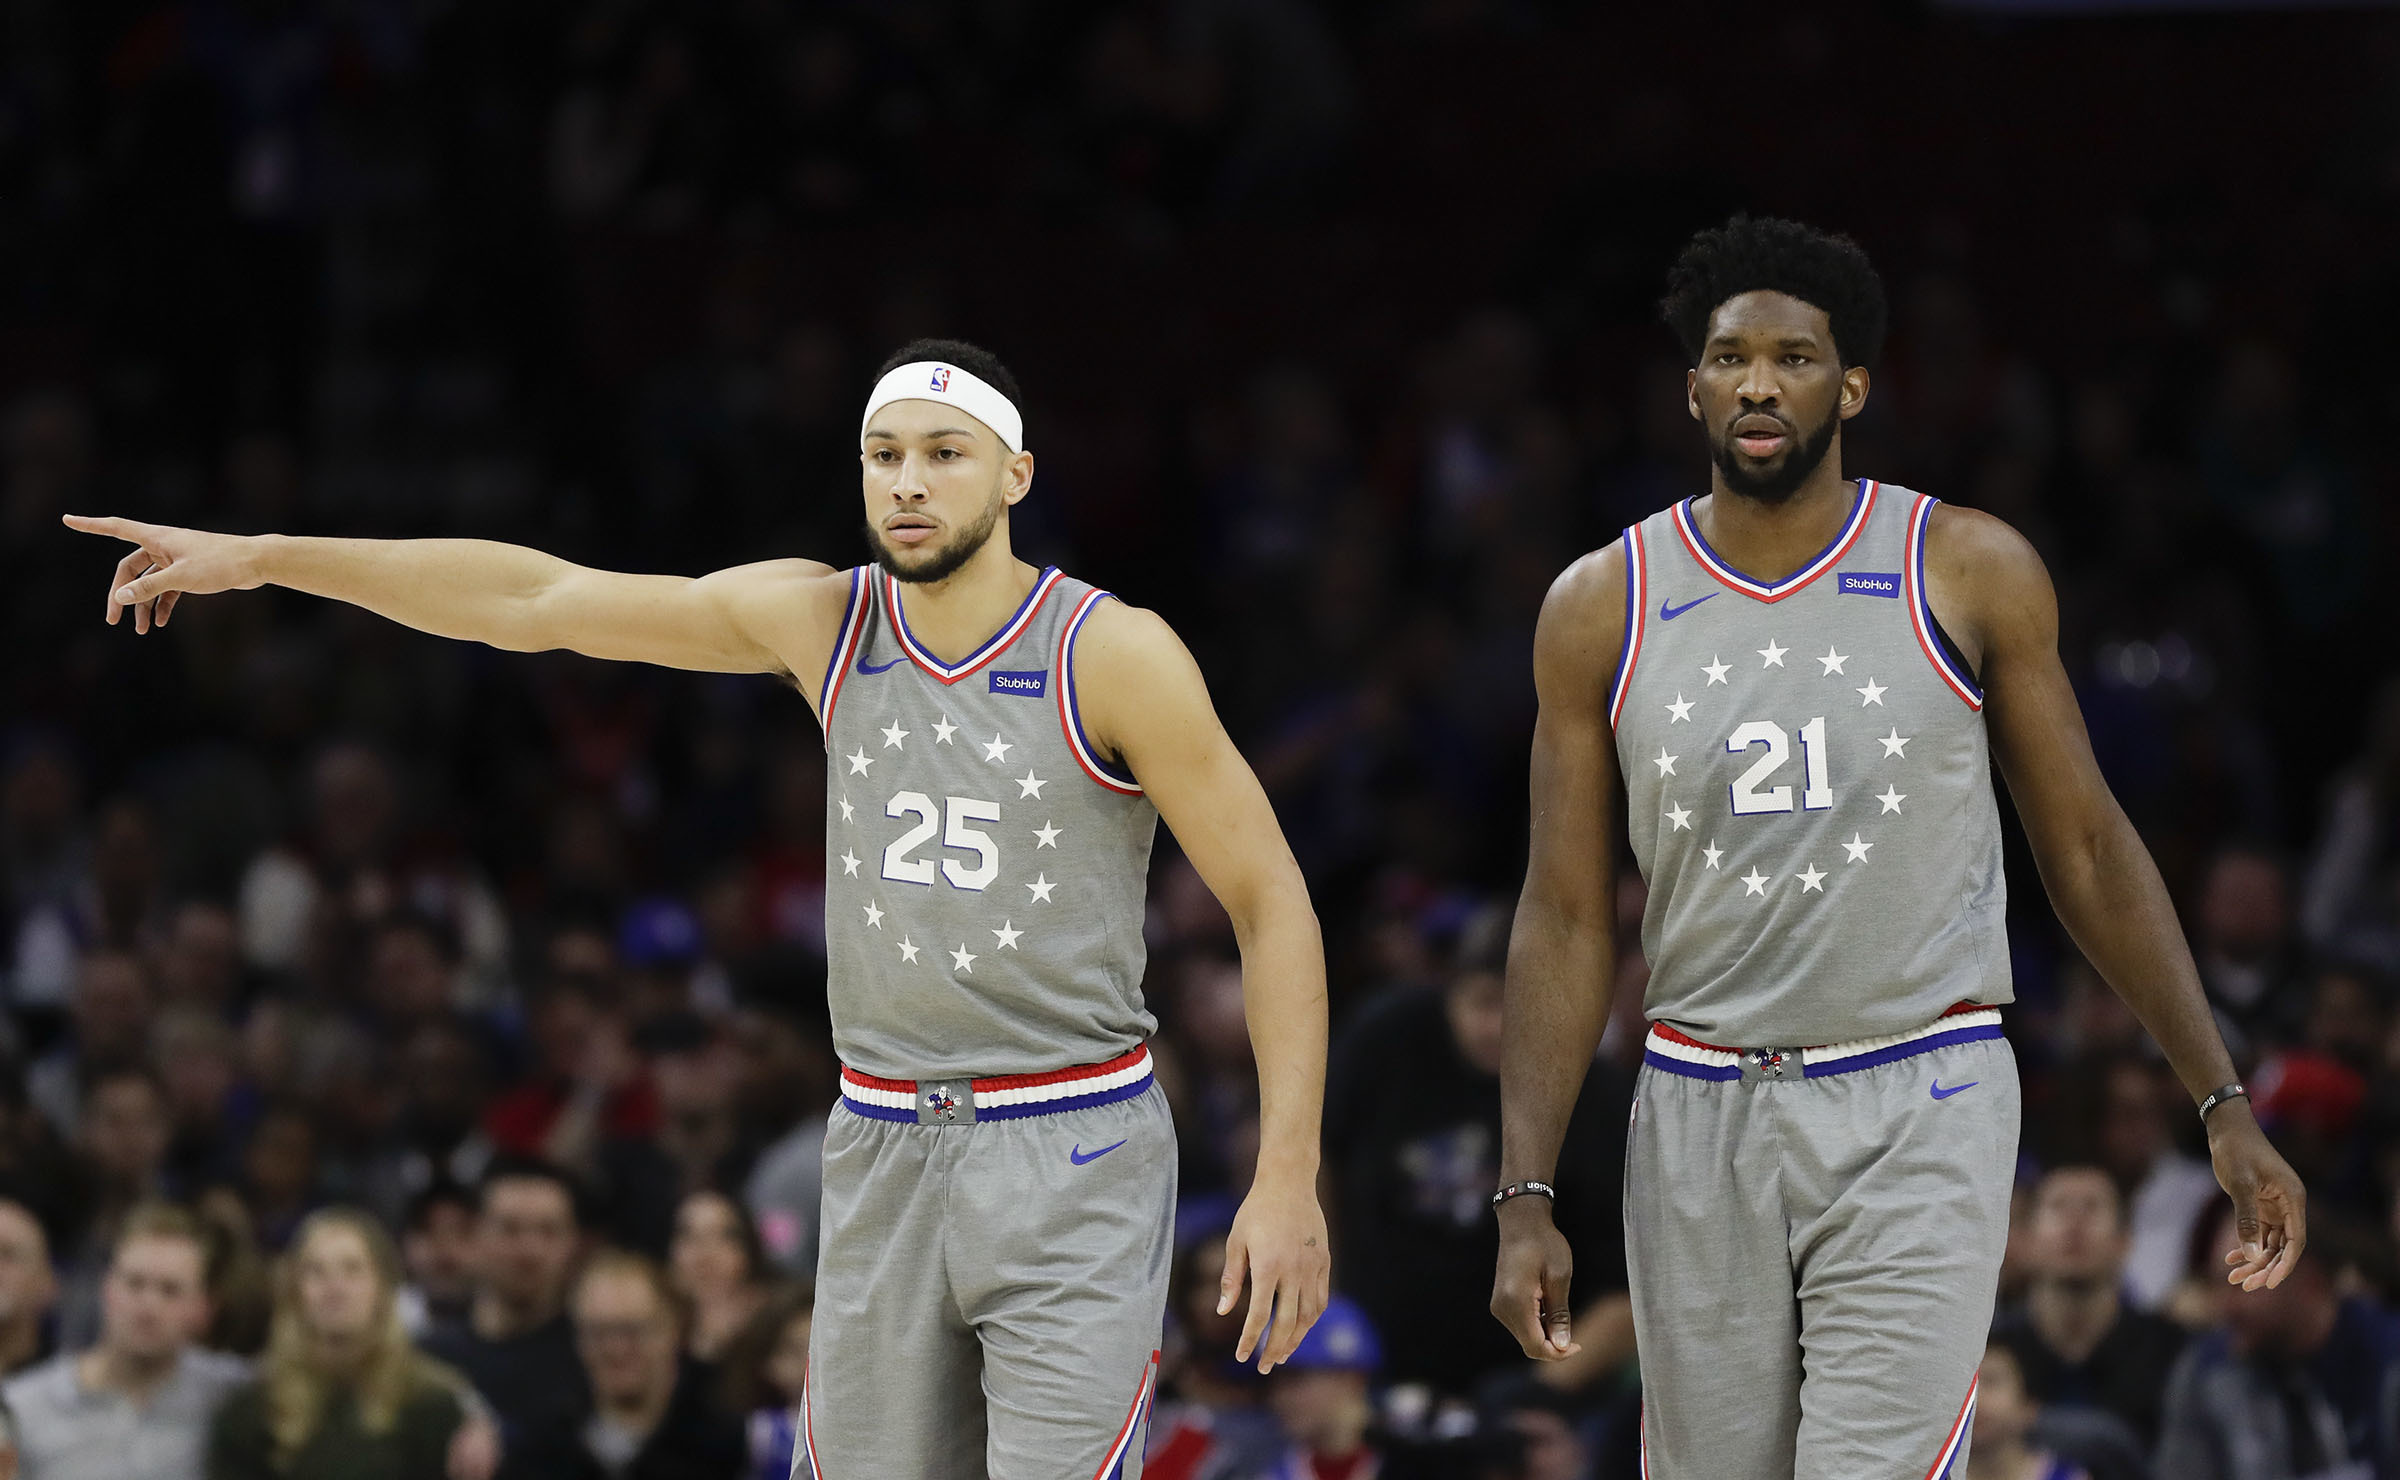 Sixers receive \'Earned Edition\' uniforms in honor of playoff appearance